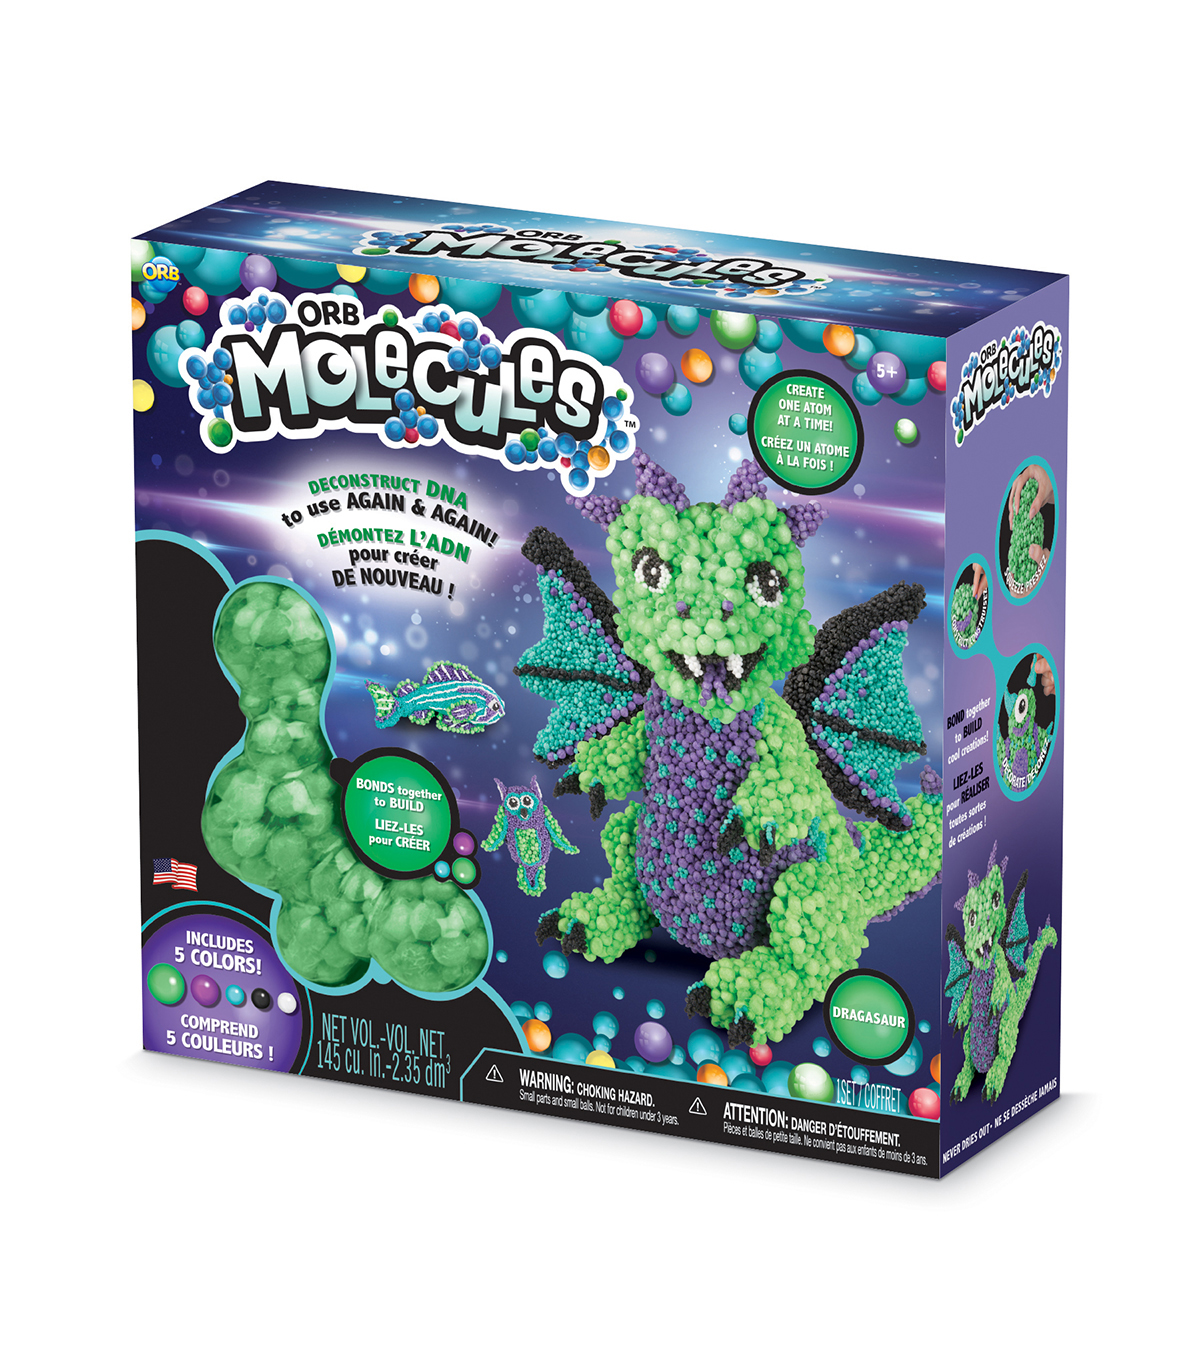 The Orb Factory ORBMolecules Dragasaur Activity Kit